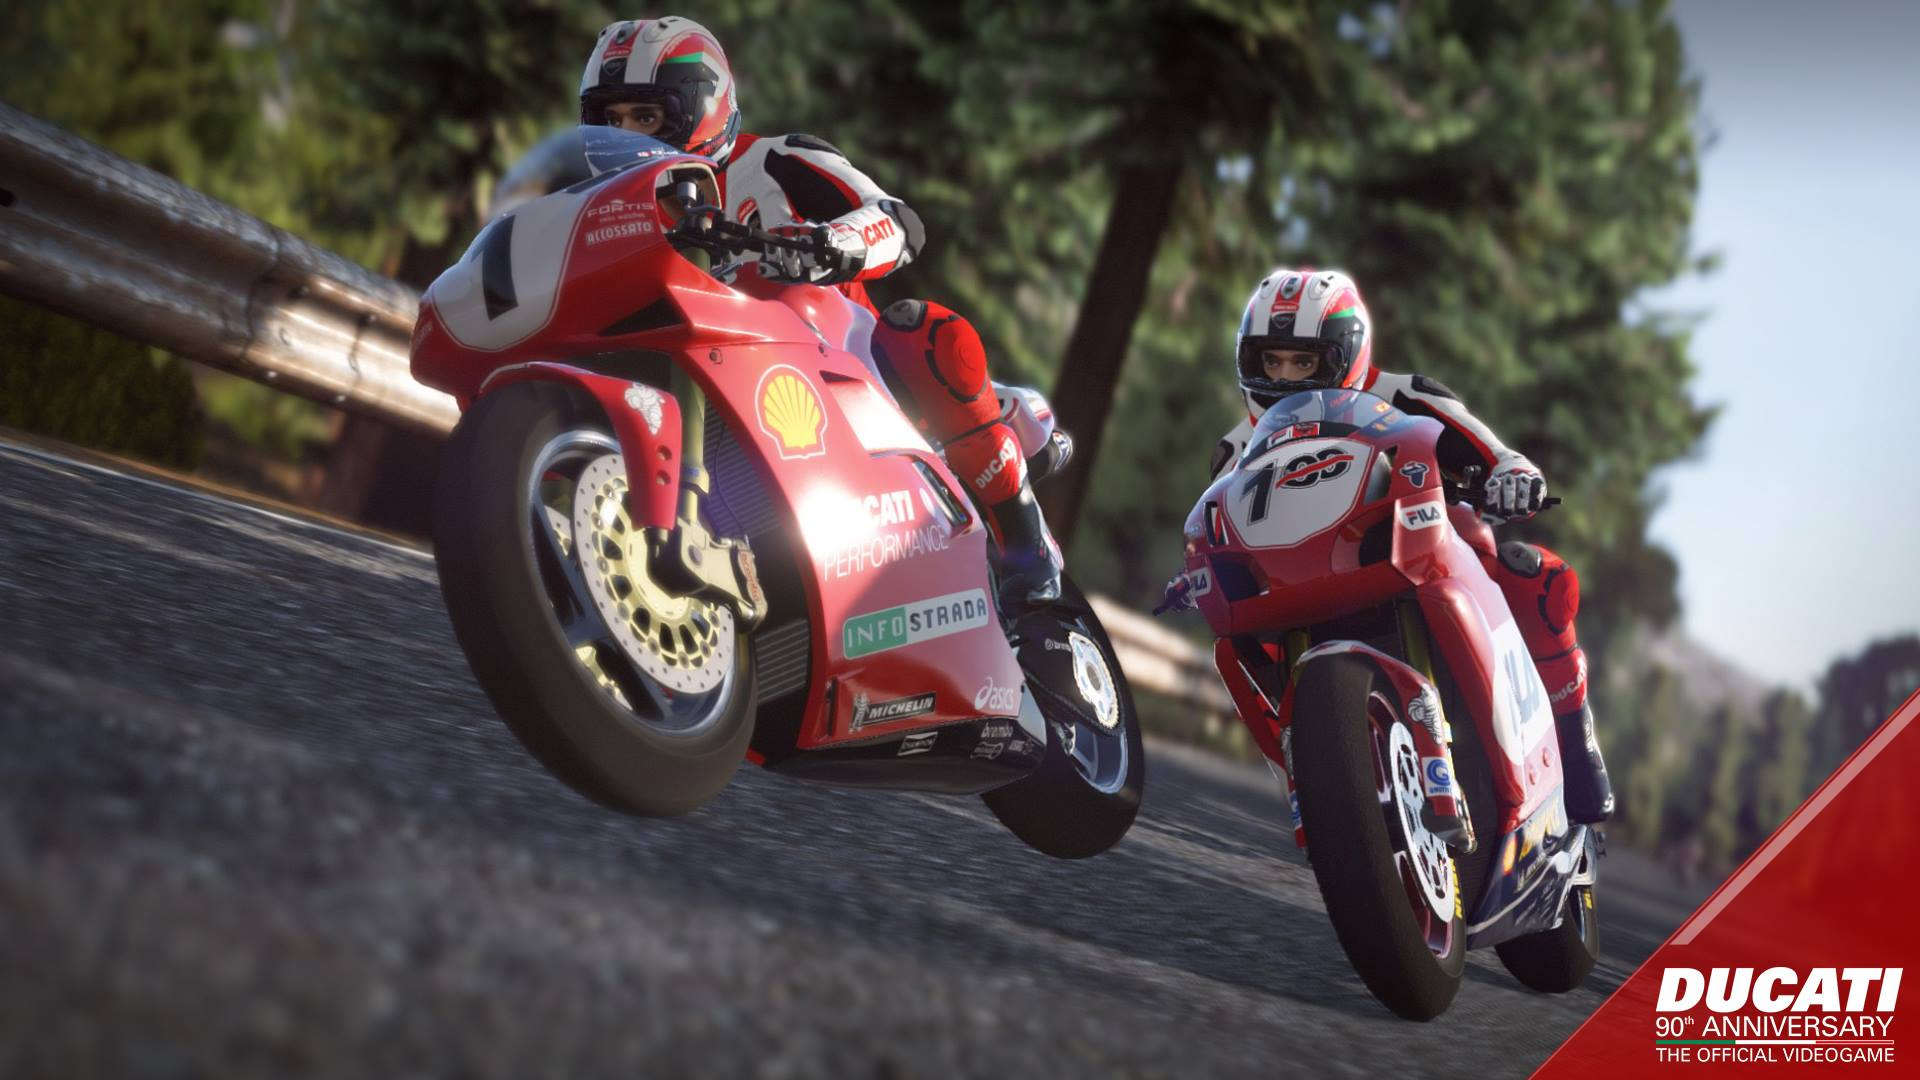 Ducati 90th Anniversary: The Official Videogame screenshot with two Ducatis racing through the countryside